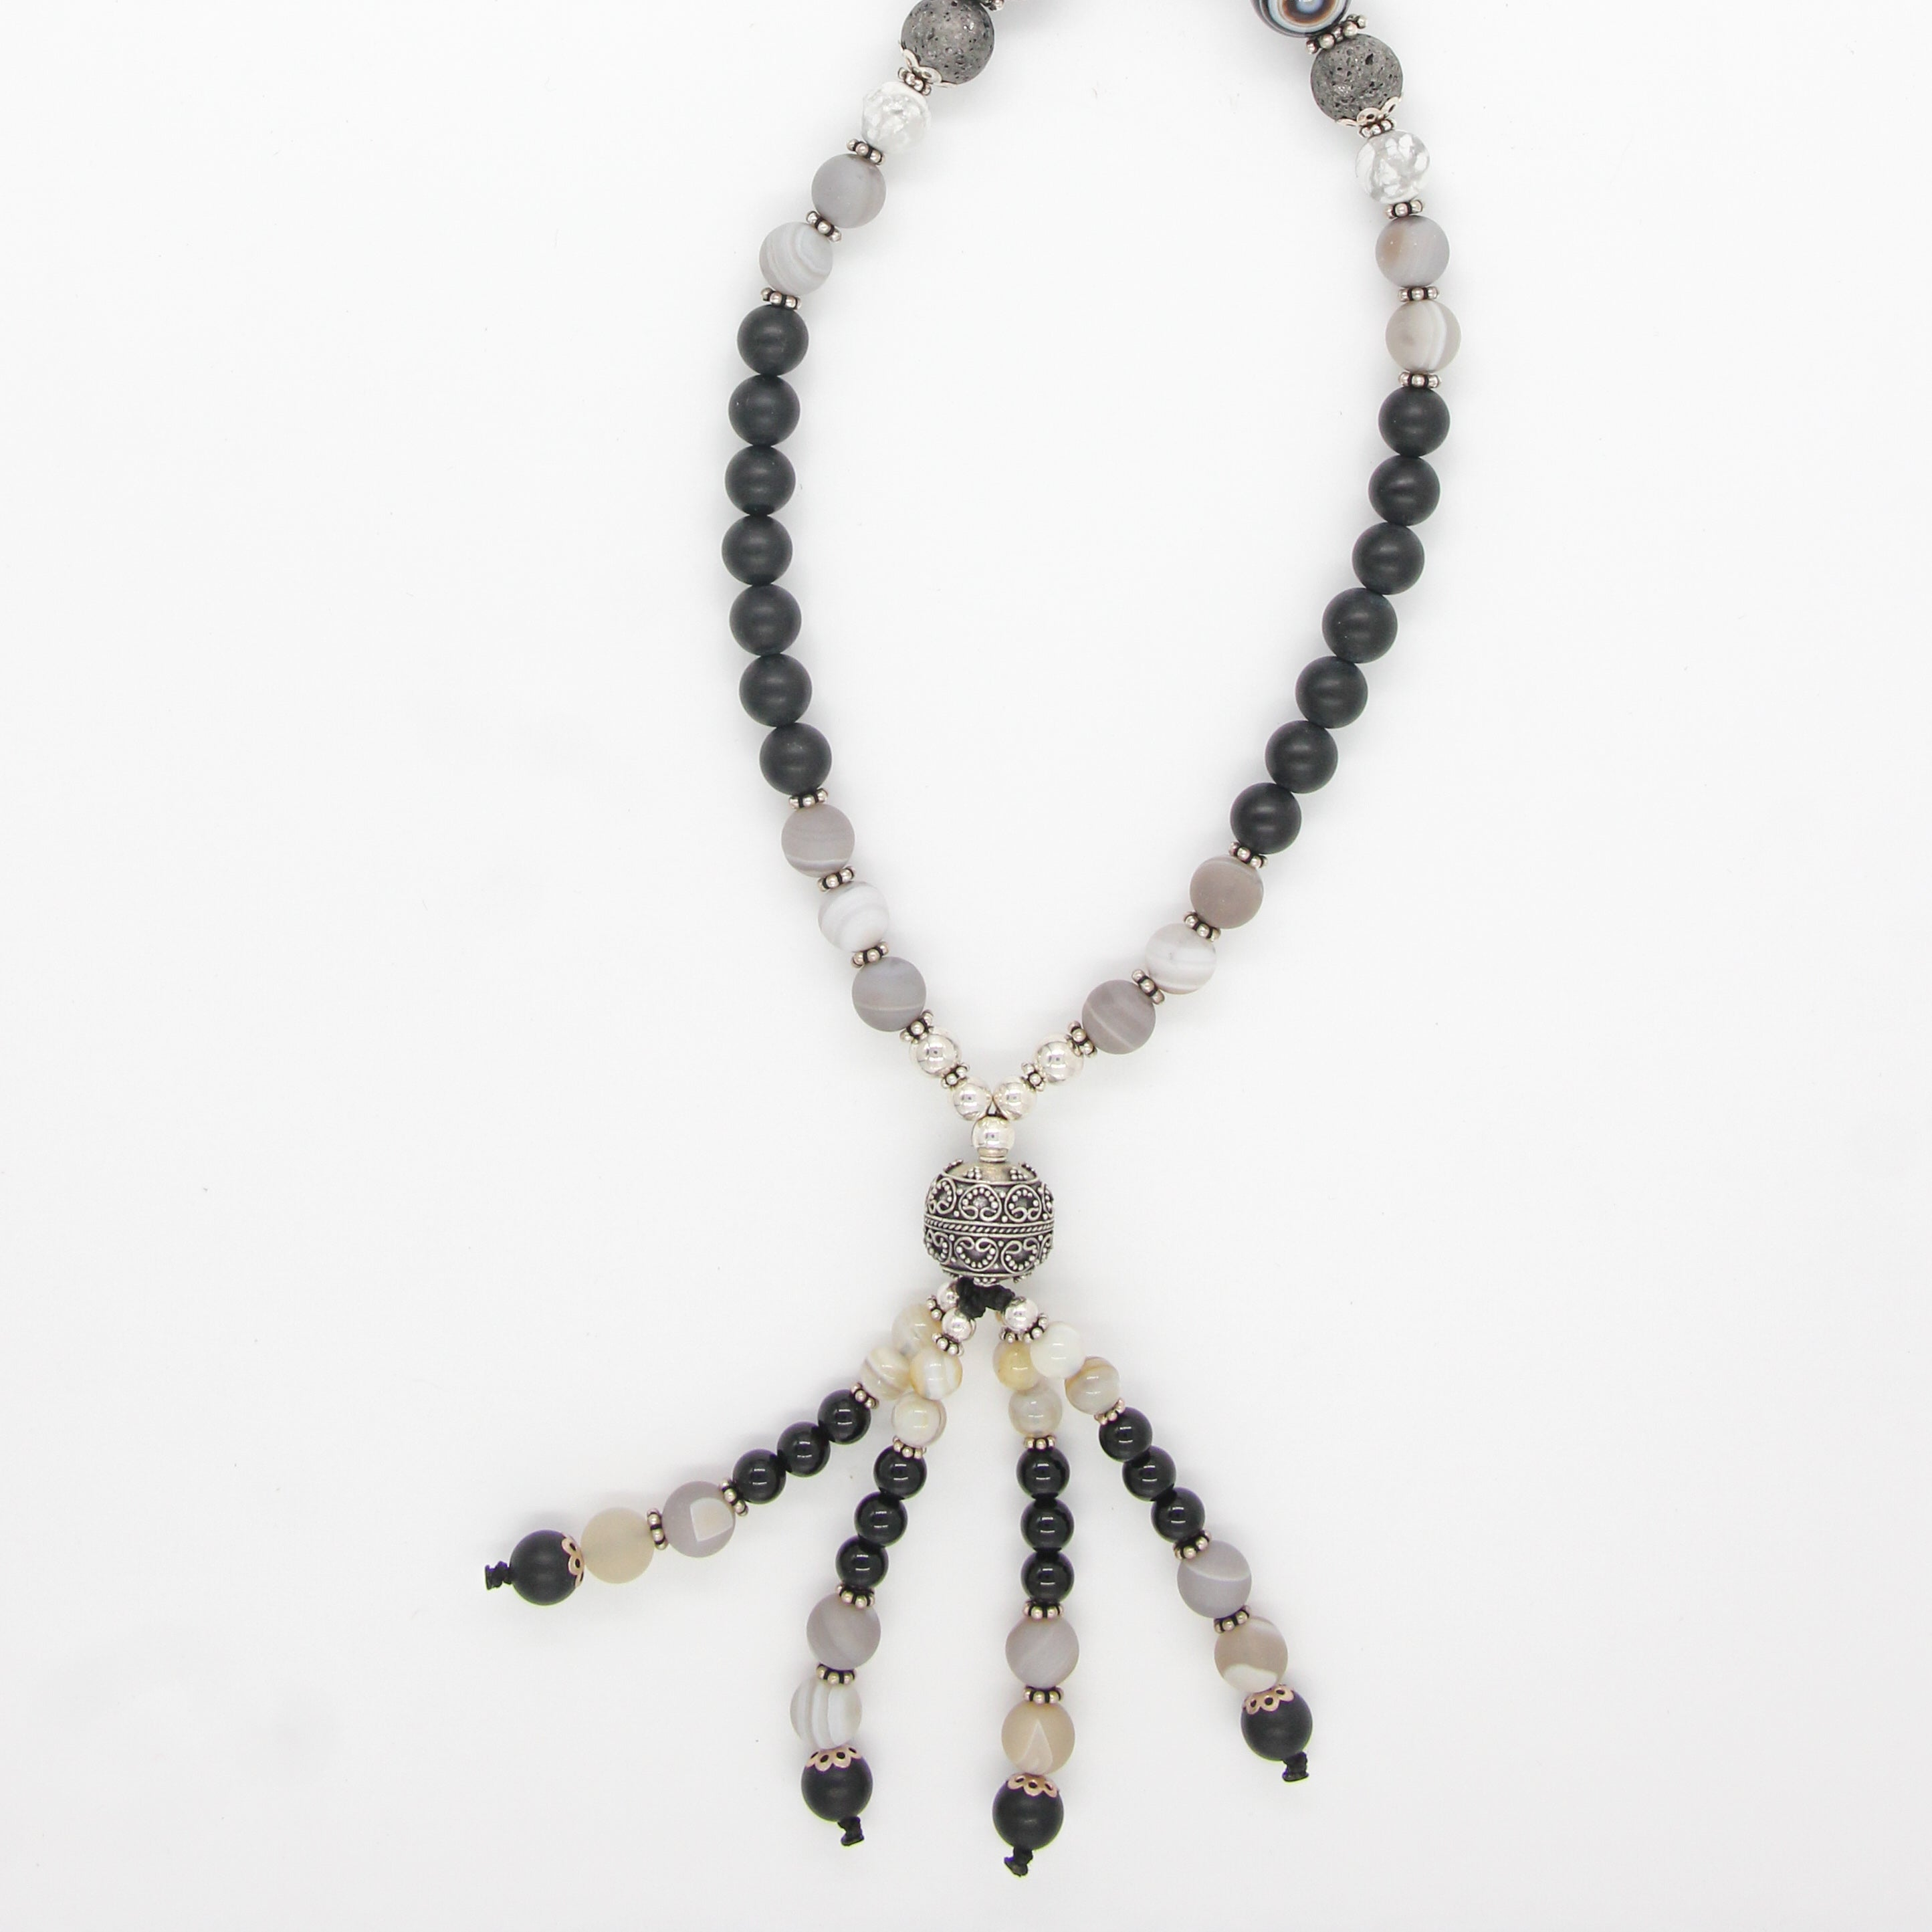 .Black Onyx Beads Necklace with Agate, Lava, Howlite and Silver Beads